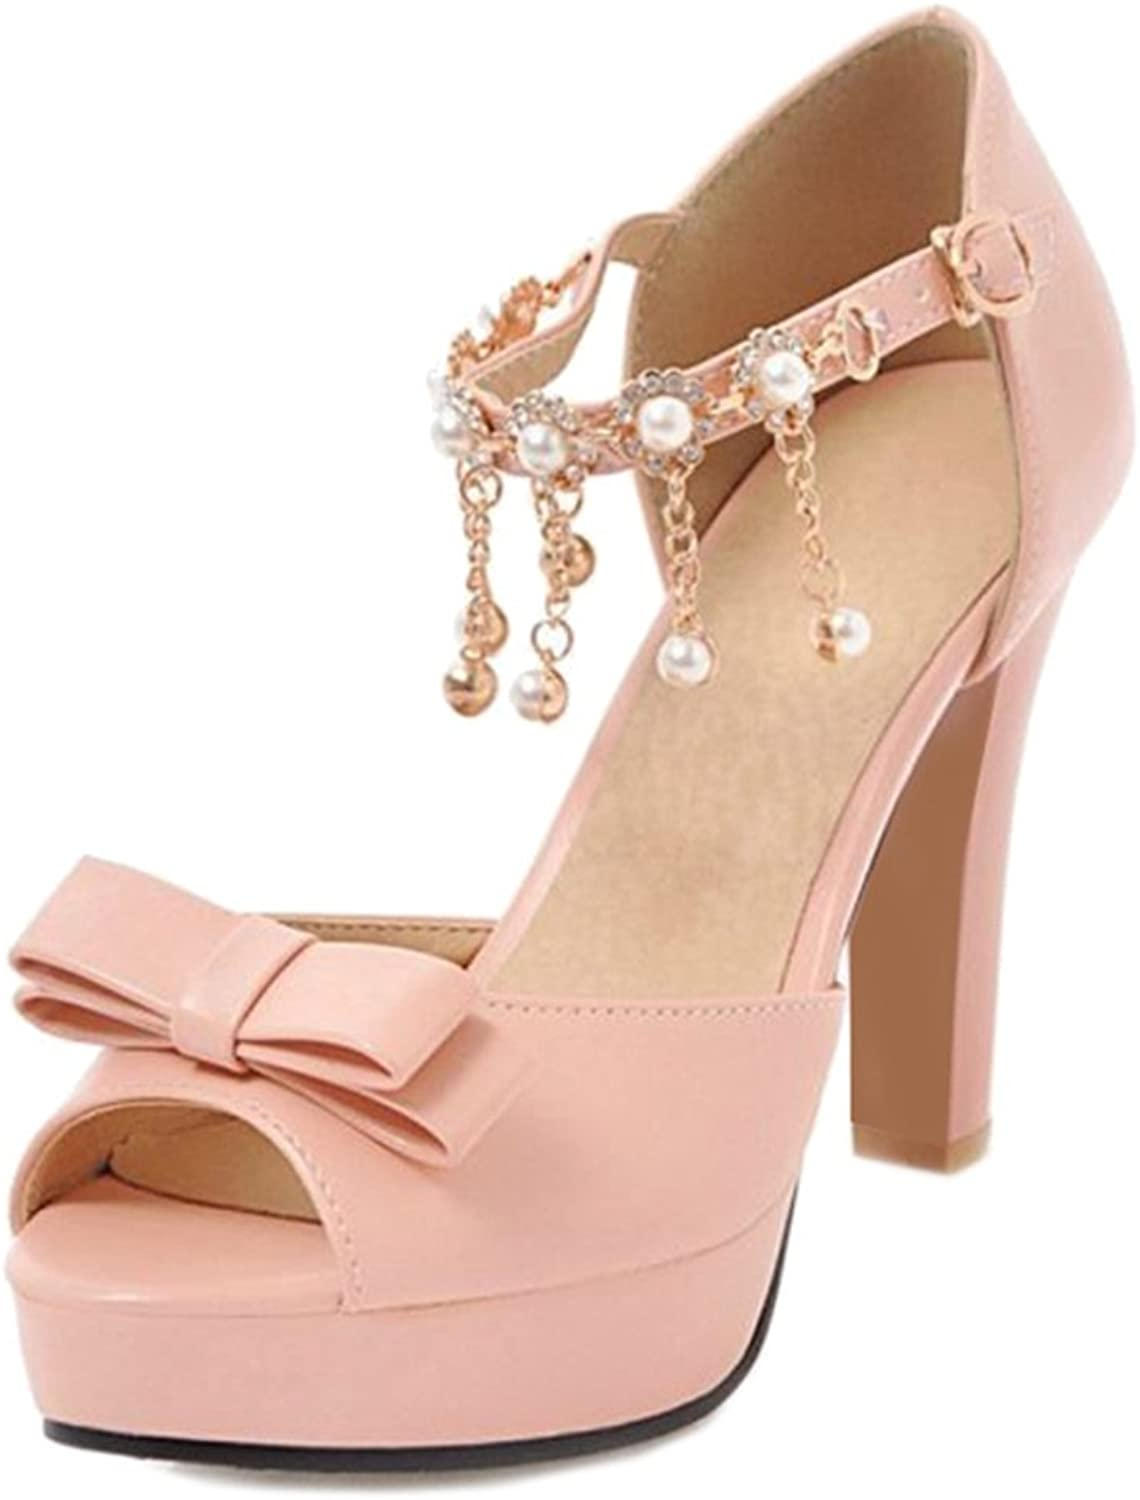 Cocey Women Sandals with High Heel and Thick Platform